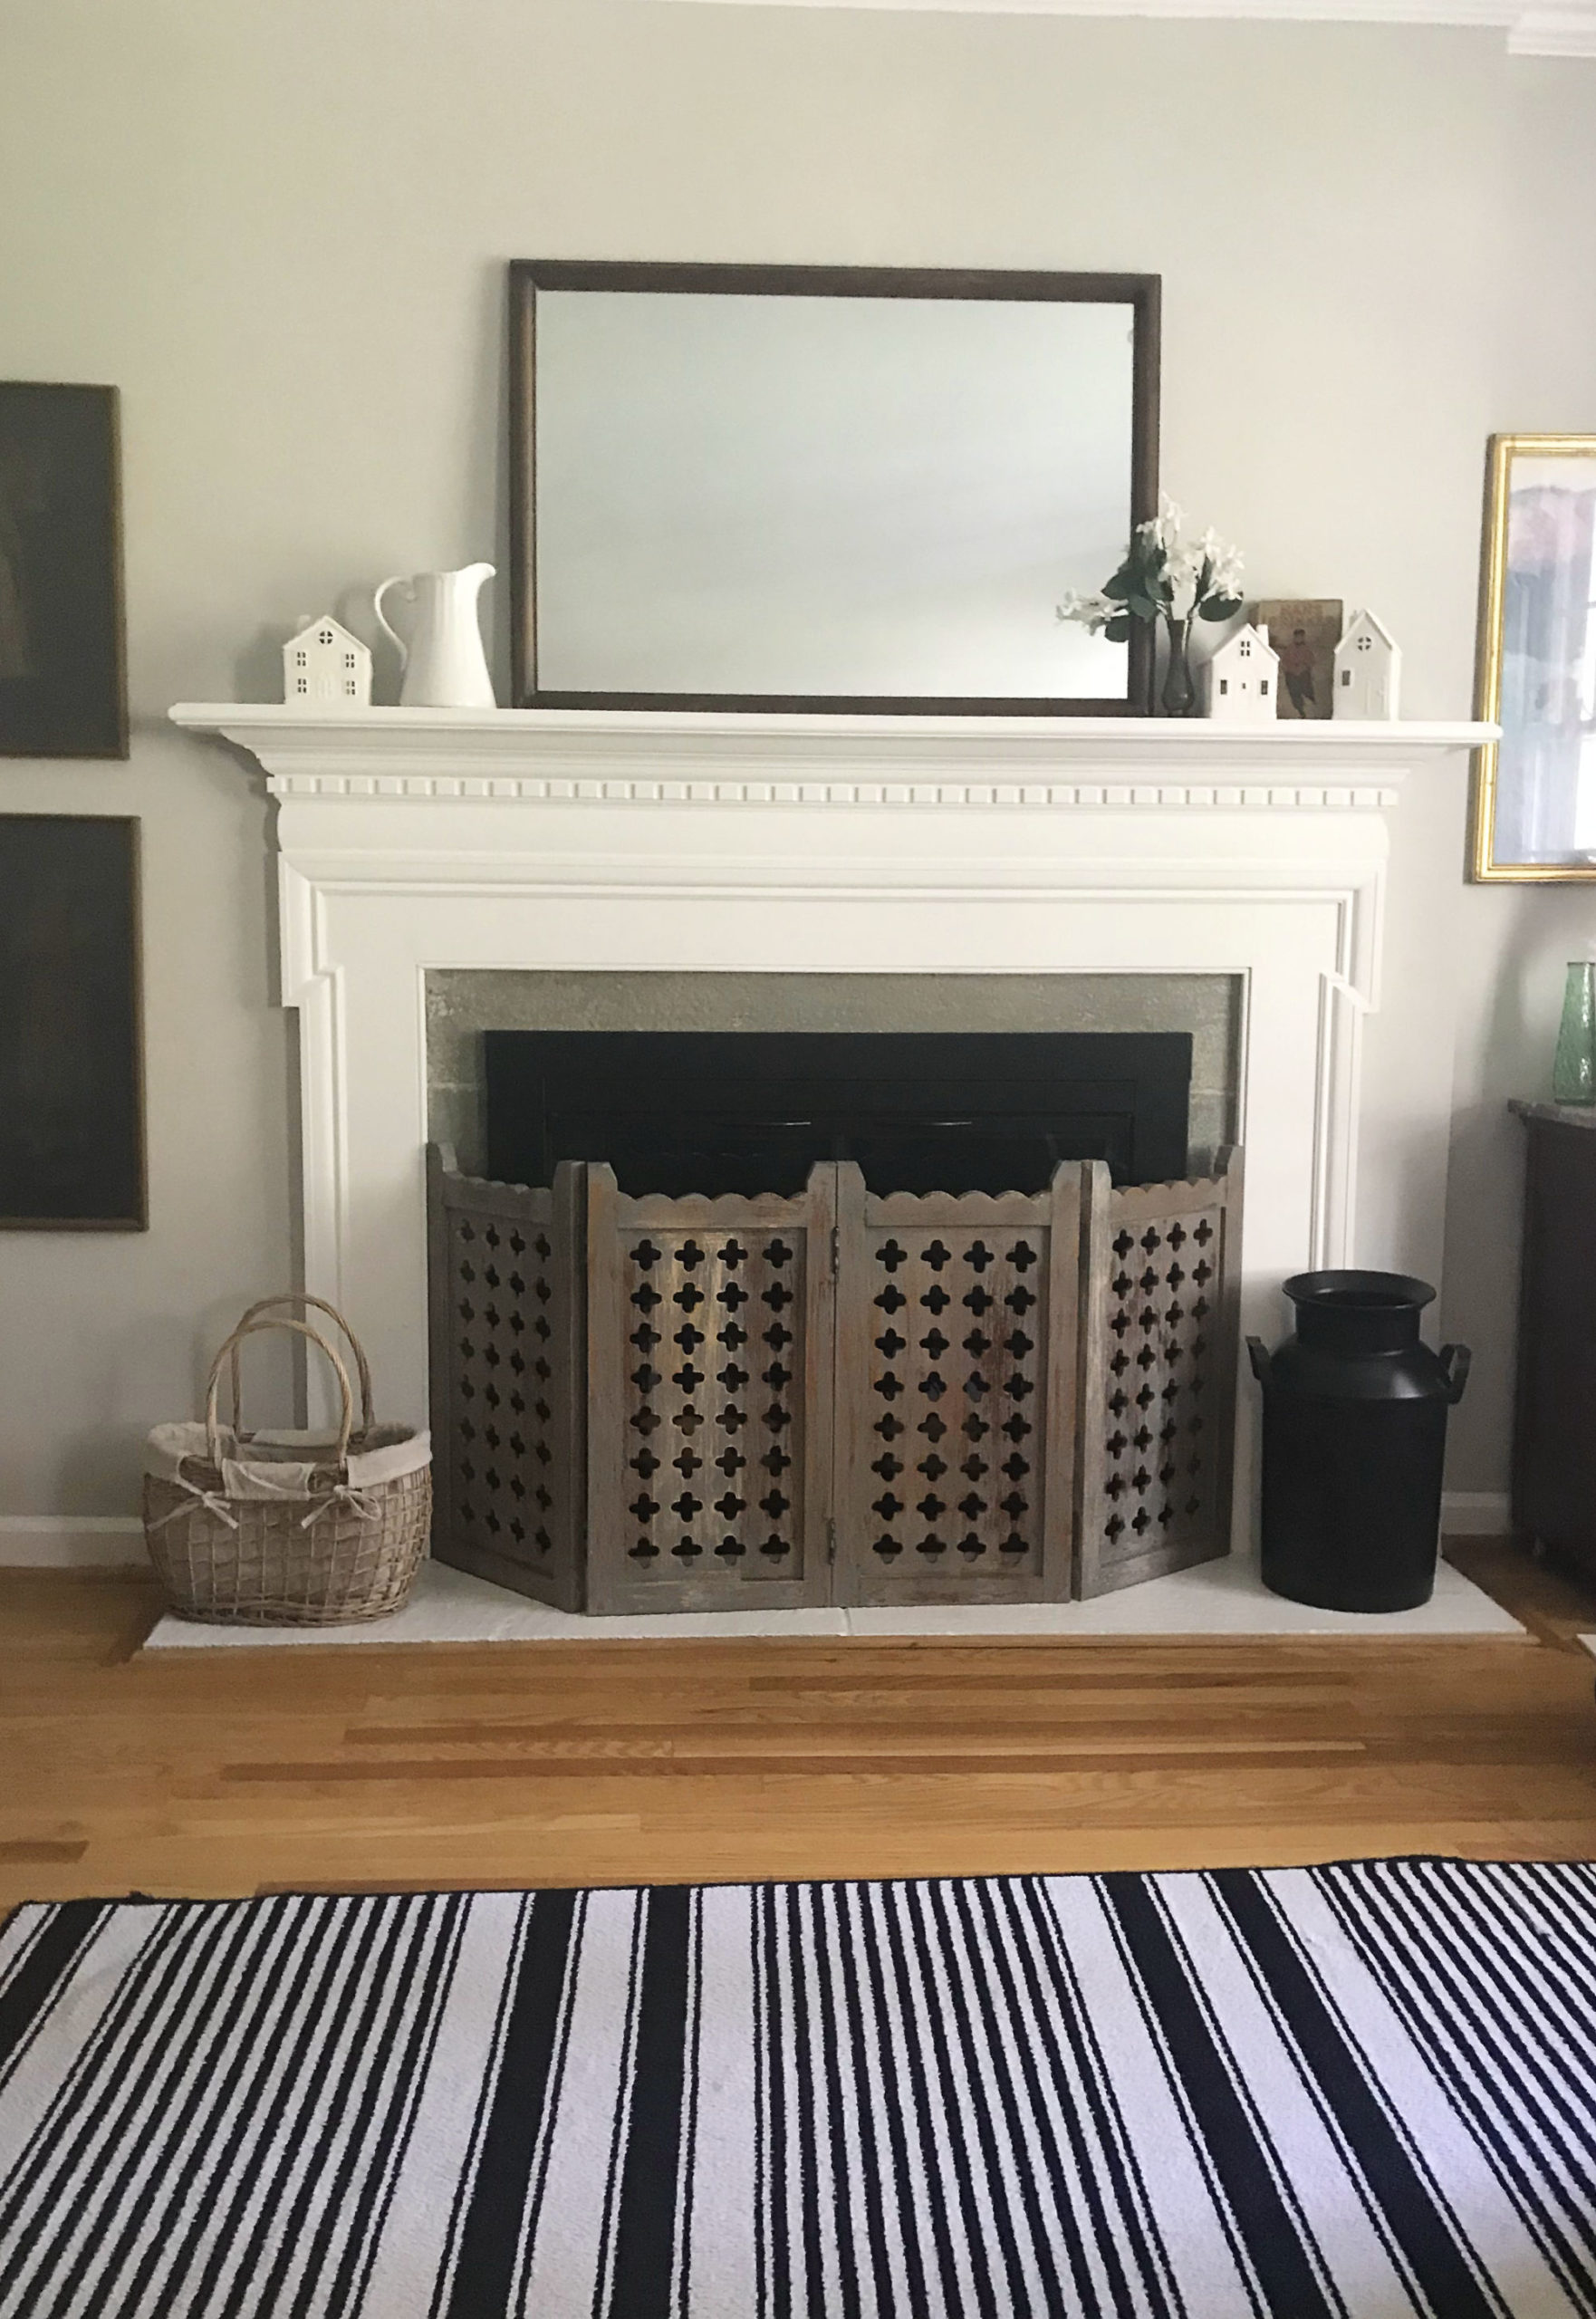 black and white striped rug in front of white wood fireplace mantel